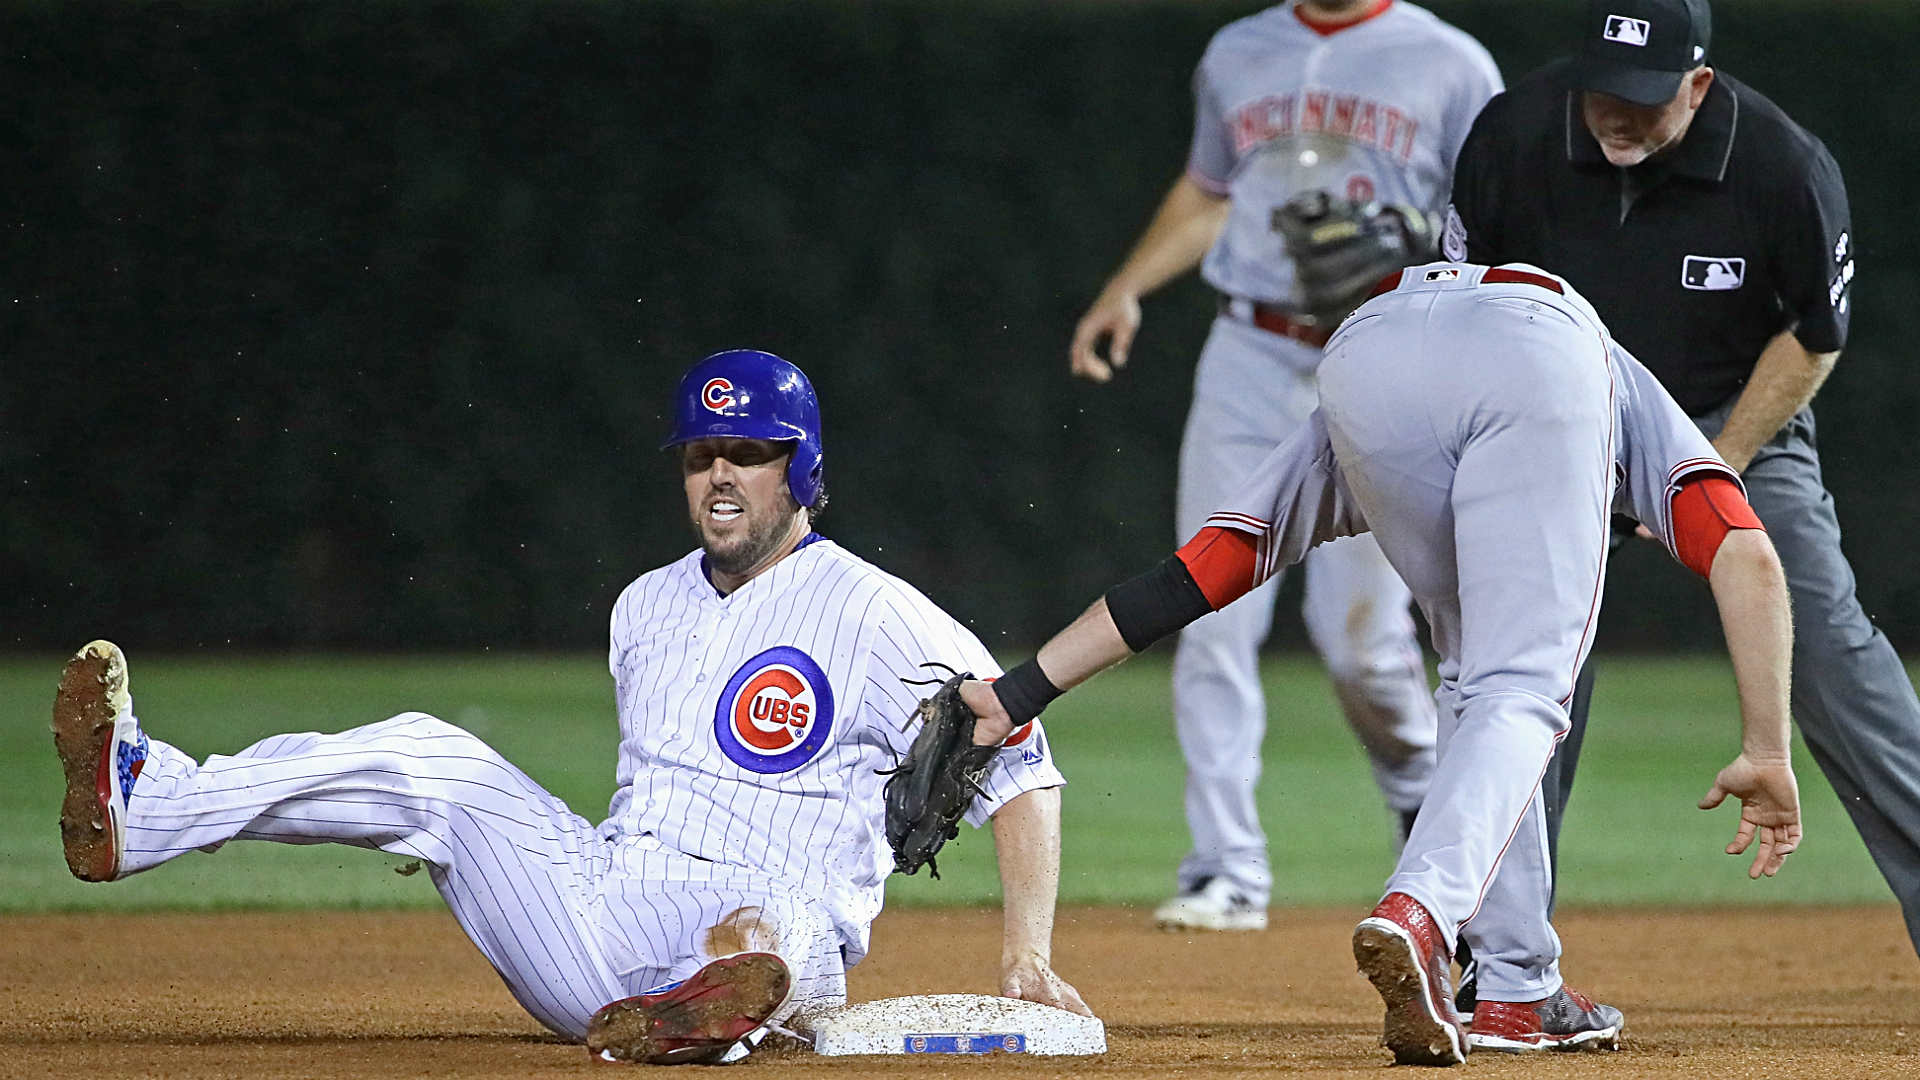 Cubs employ 4-man outfield alignment vs. Joey Votto. The result?